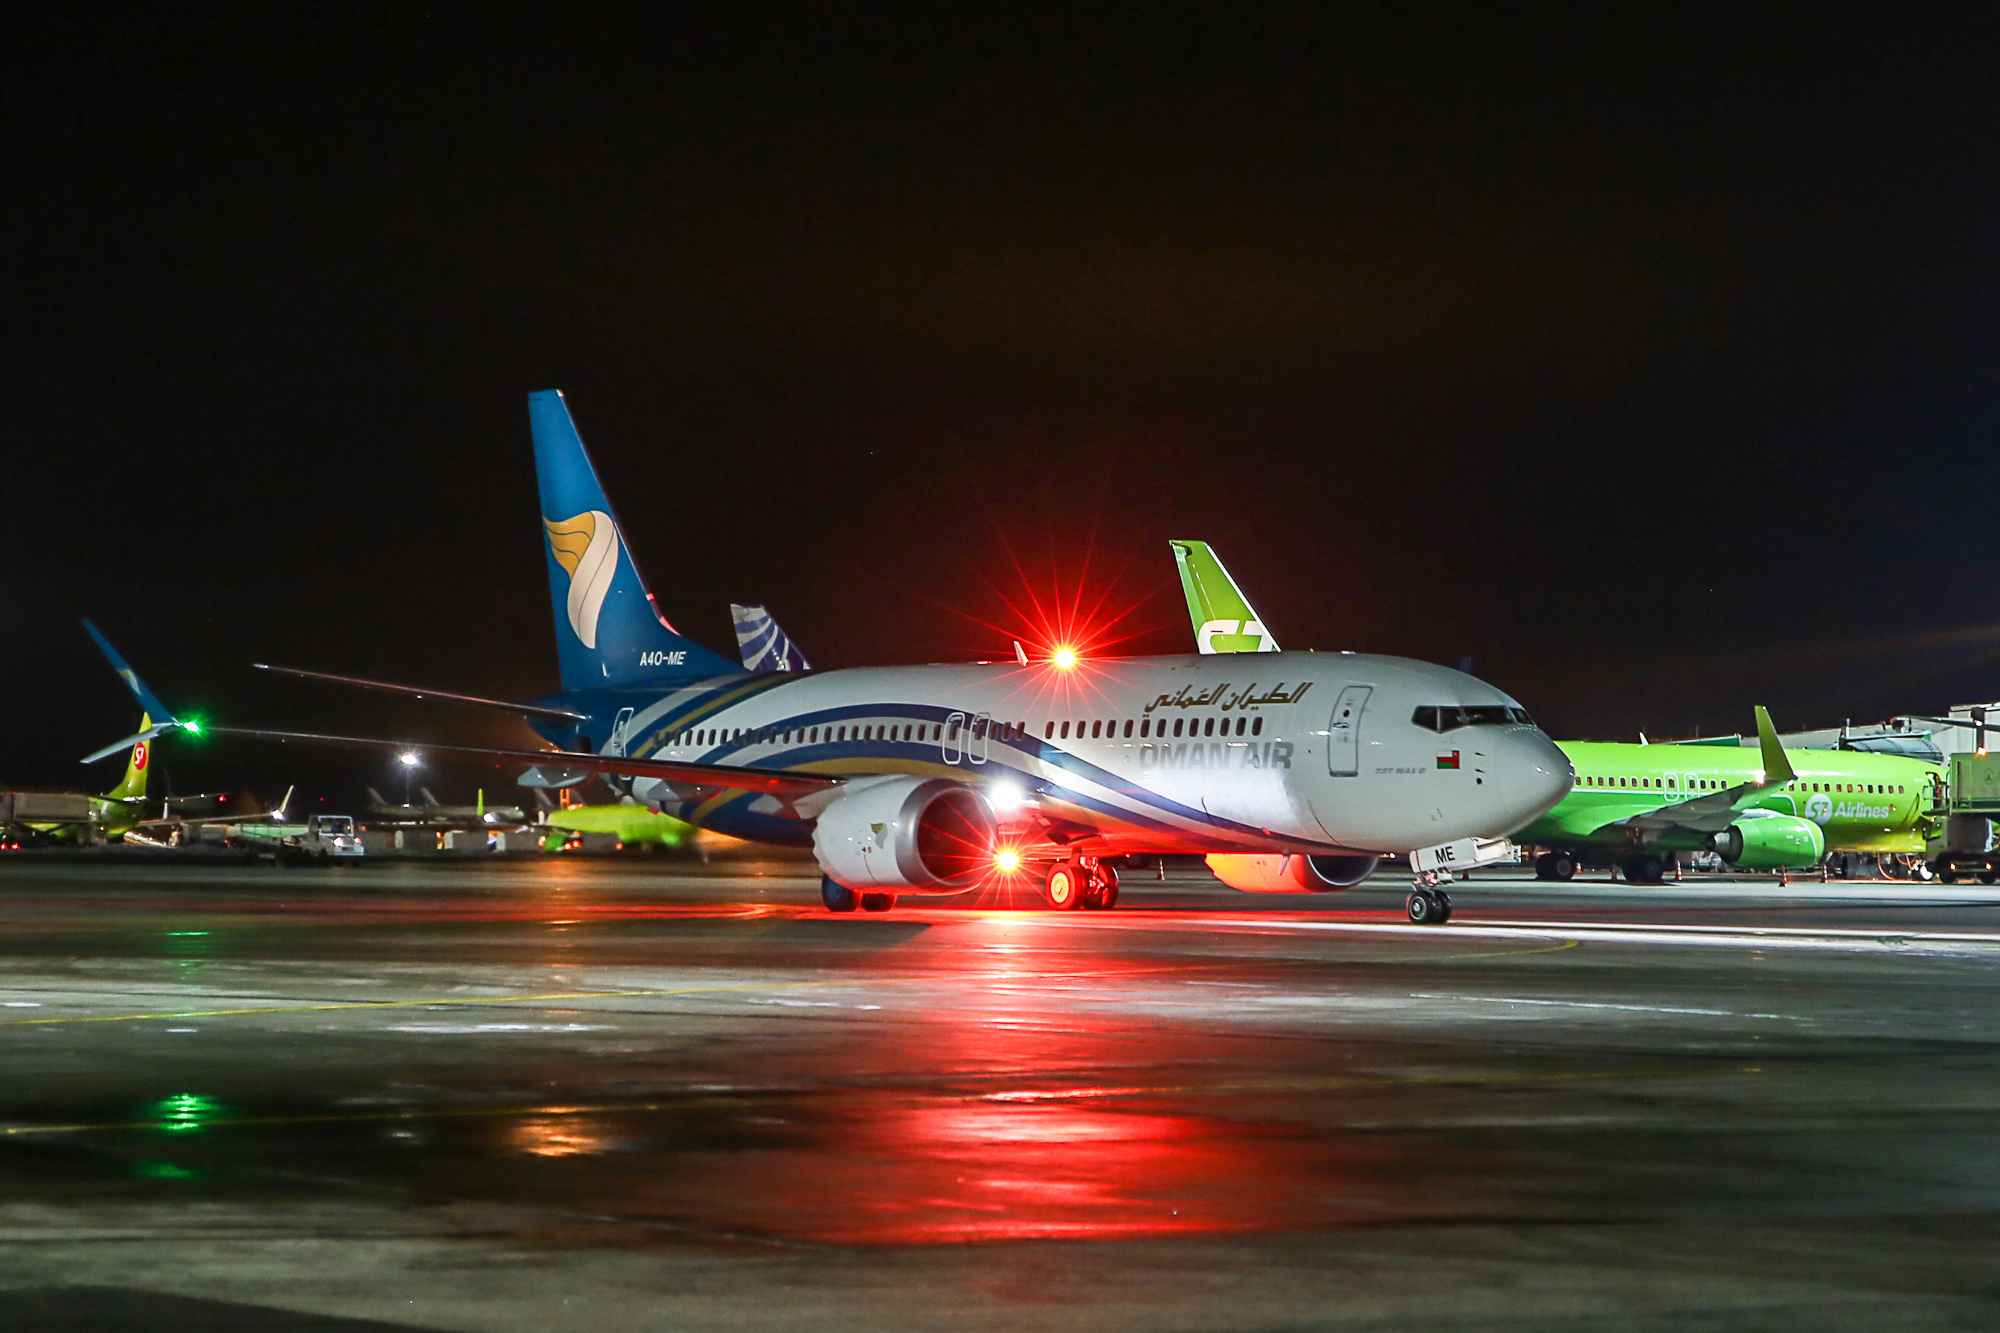 The Boeing 737 MAX 8 of Oman Air at Moscow Domodedovo airport